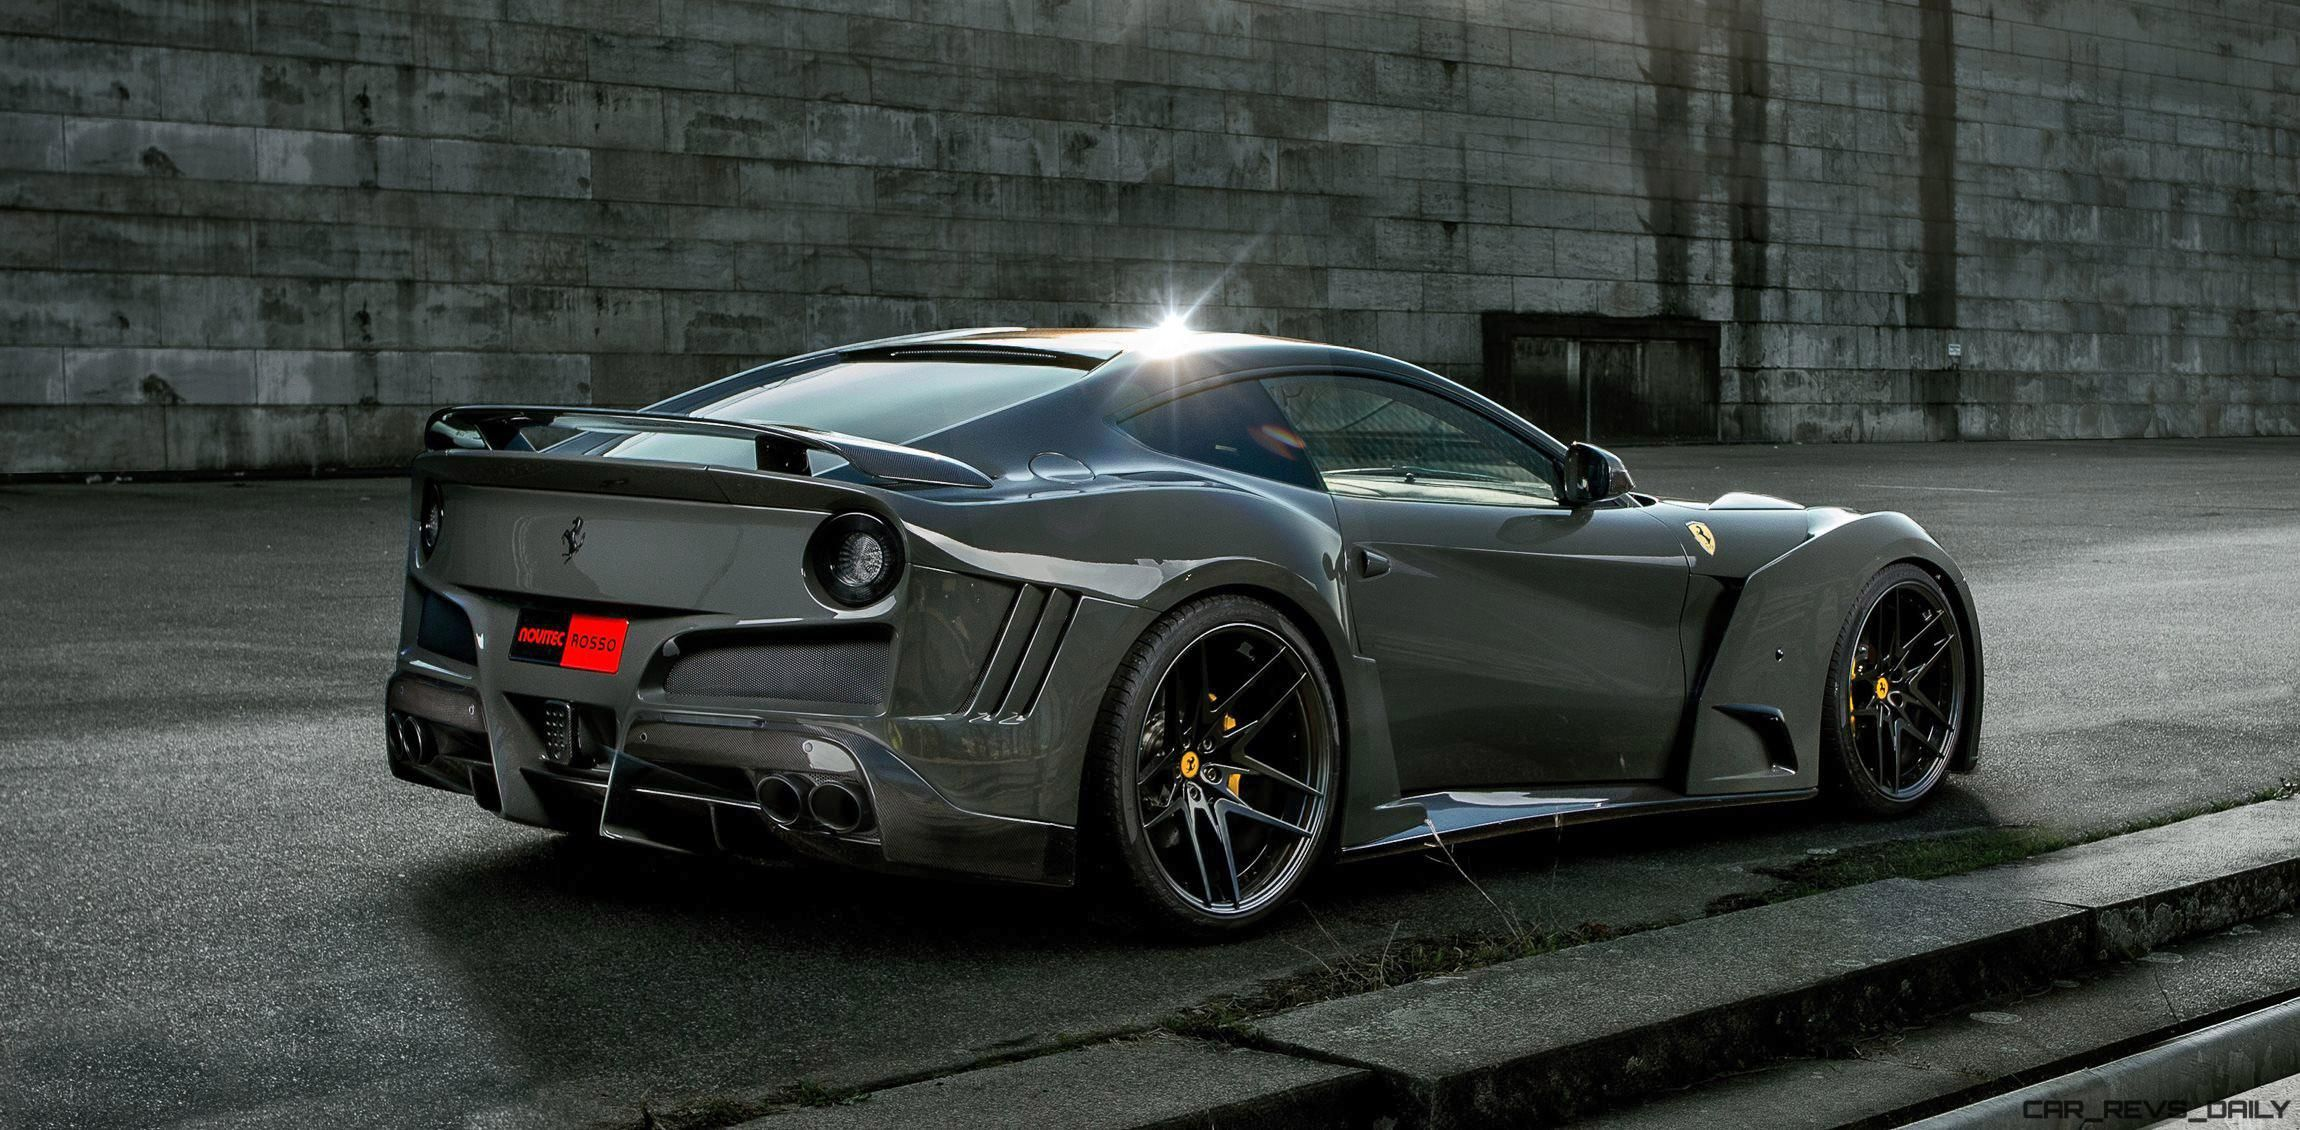 Ferrari F12 N Largo S By Novitec Rosso 9 Jpg 2300 1130 With